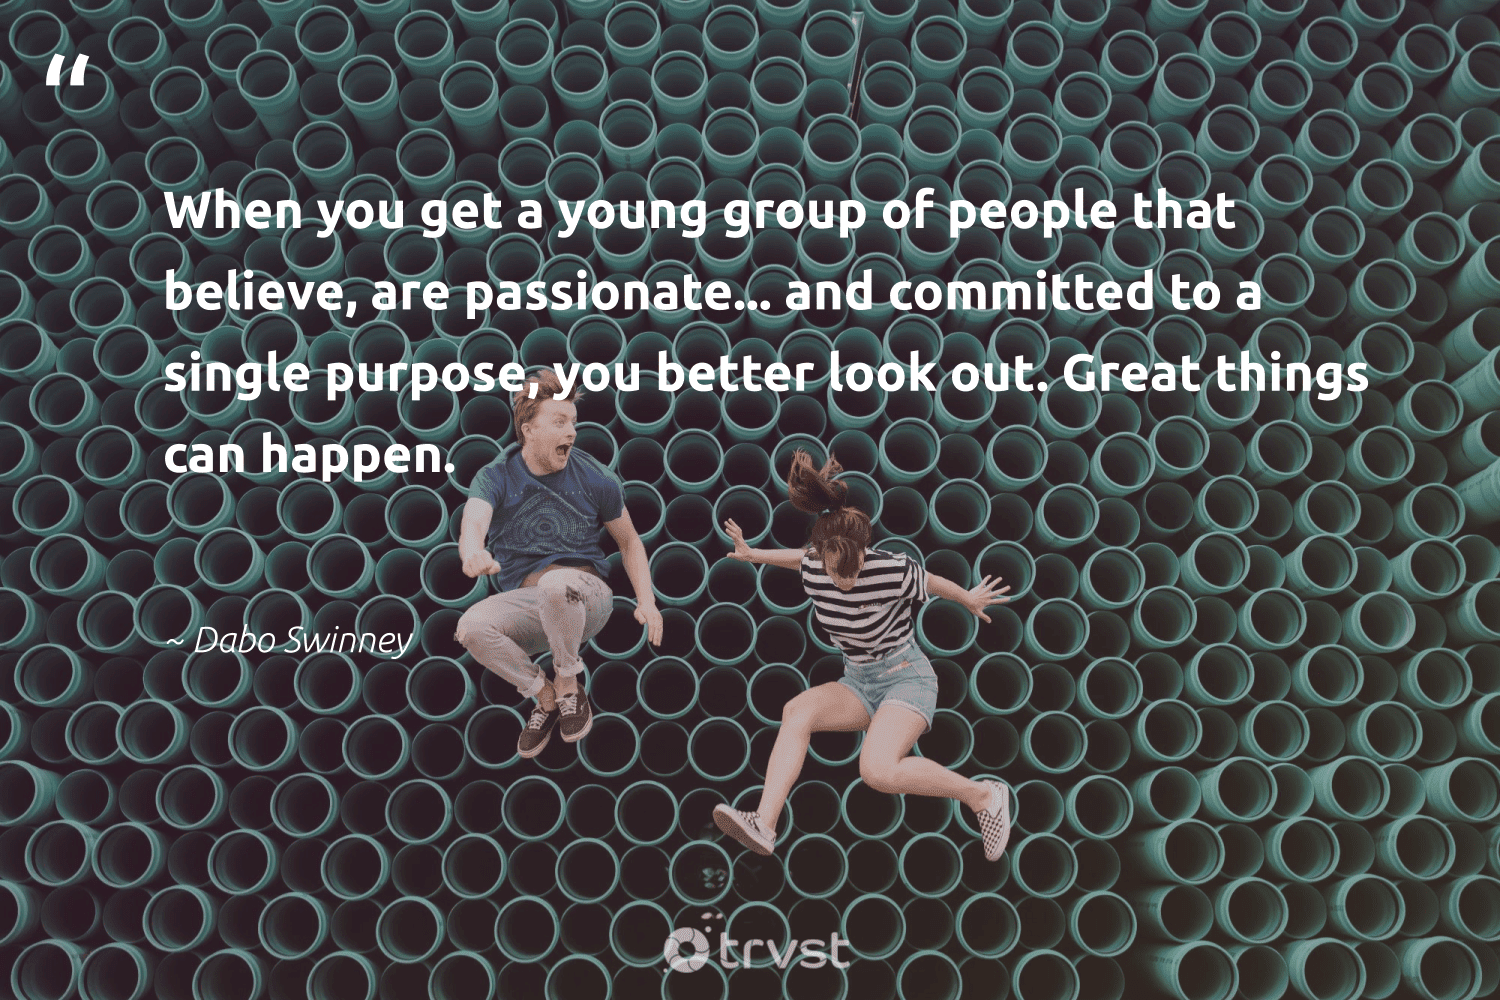 """""""When you get a young group of people that believe, are passionate... and committed to a single purpose, you better look out. Great things can happen.""""  - Dabo Swinney #trvst #quotes #purpose #purposedriven #health #mindset #collectiveaction #findpurpose #changemakers #nevergiveup #dogood #findingpupose"""